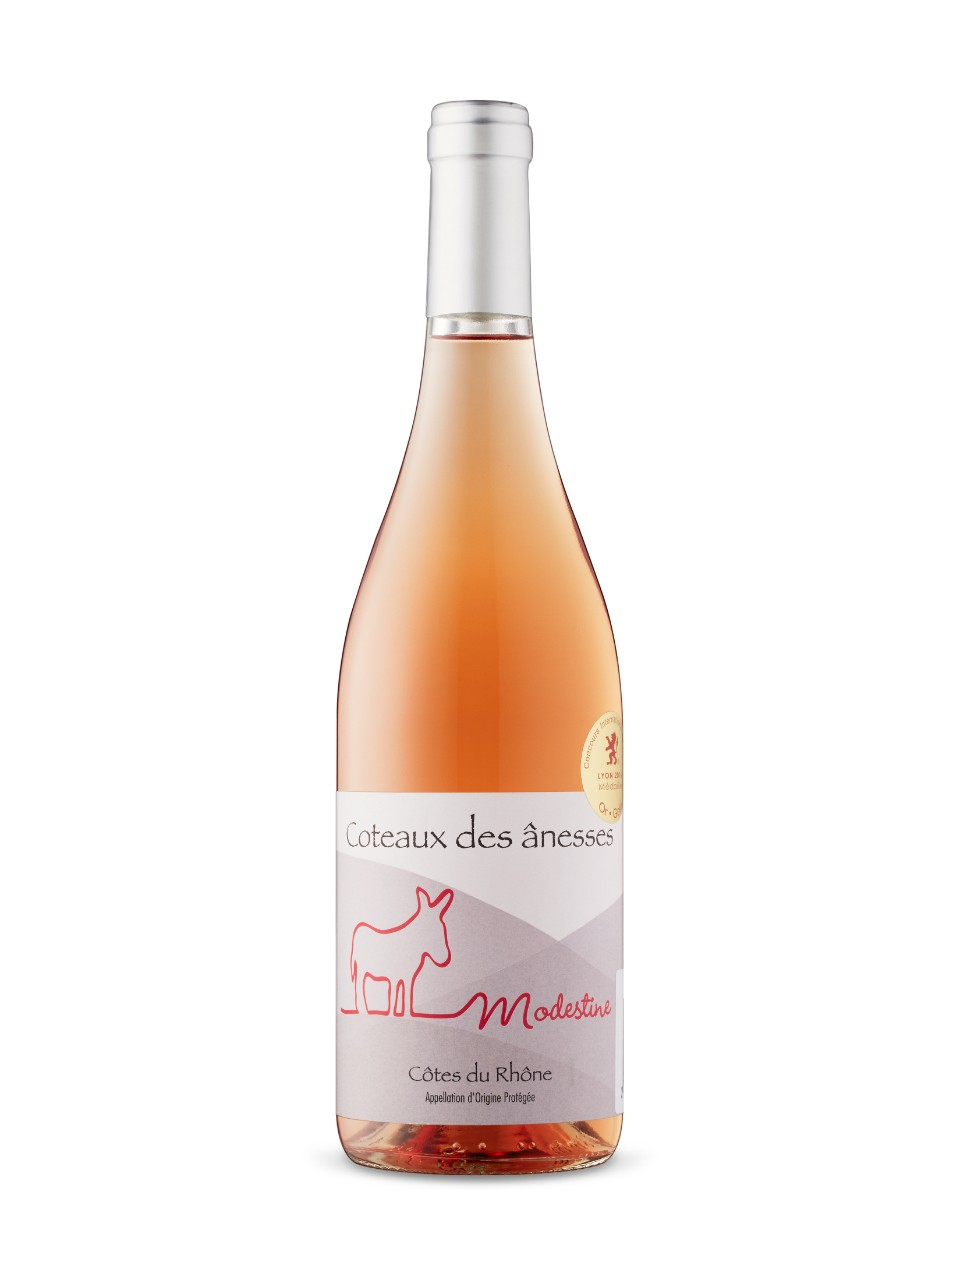 Image for Modestine AOP Cotes Du Rhone Rose 2015 from LCBO